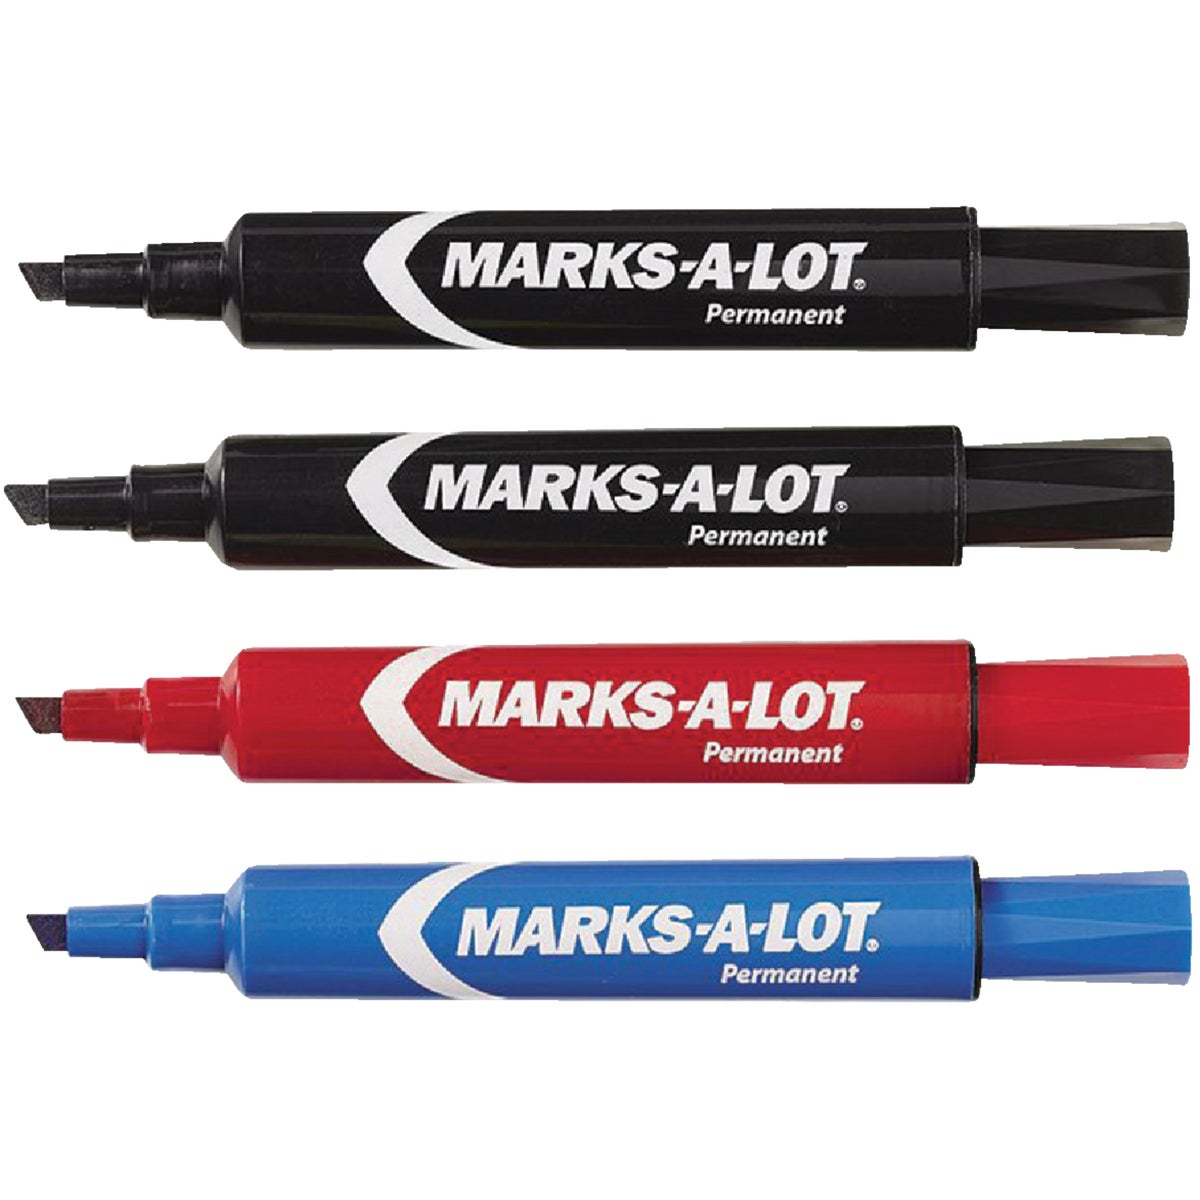 4PK ASTD MARKS-A-LOT - 07905 by Avery Dennison